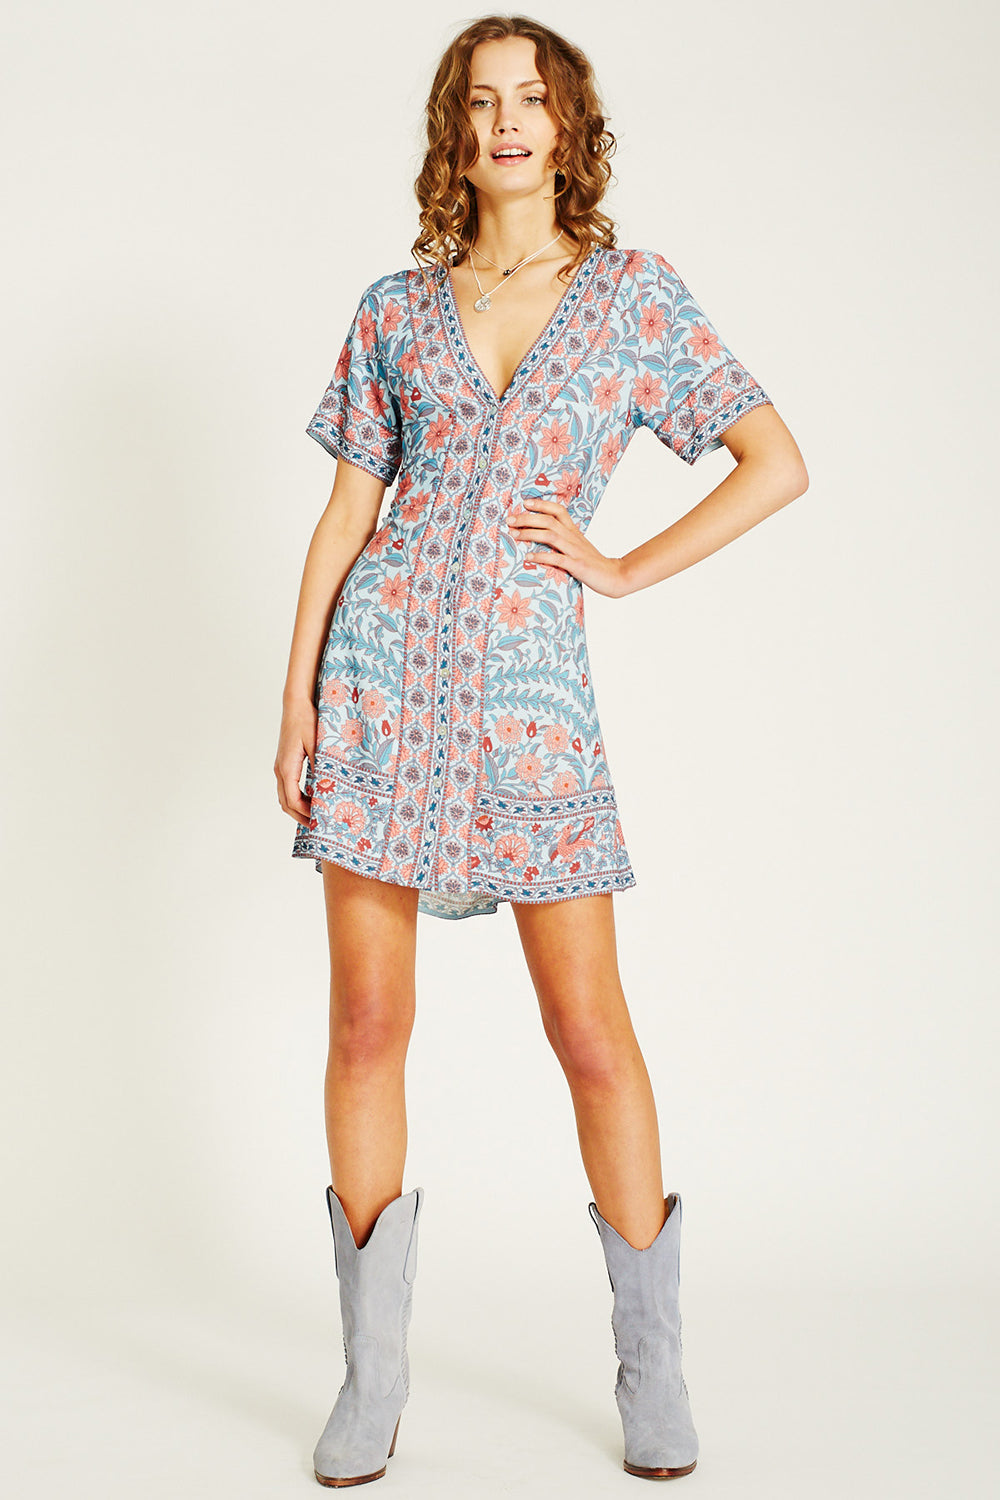 Marigold Mini Dress in Crystal